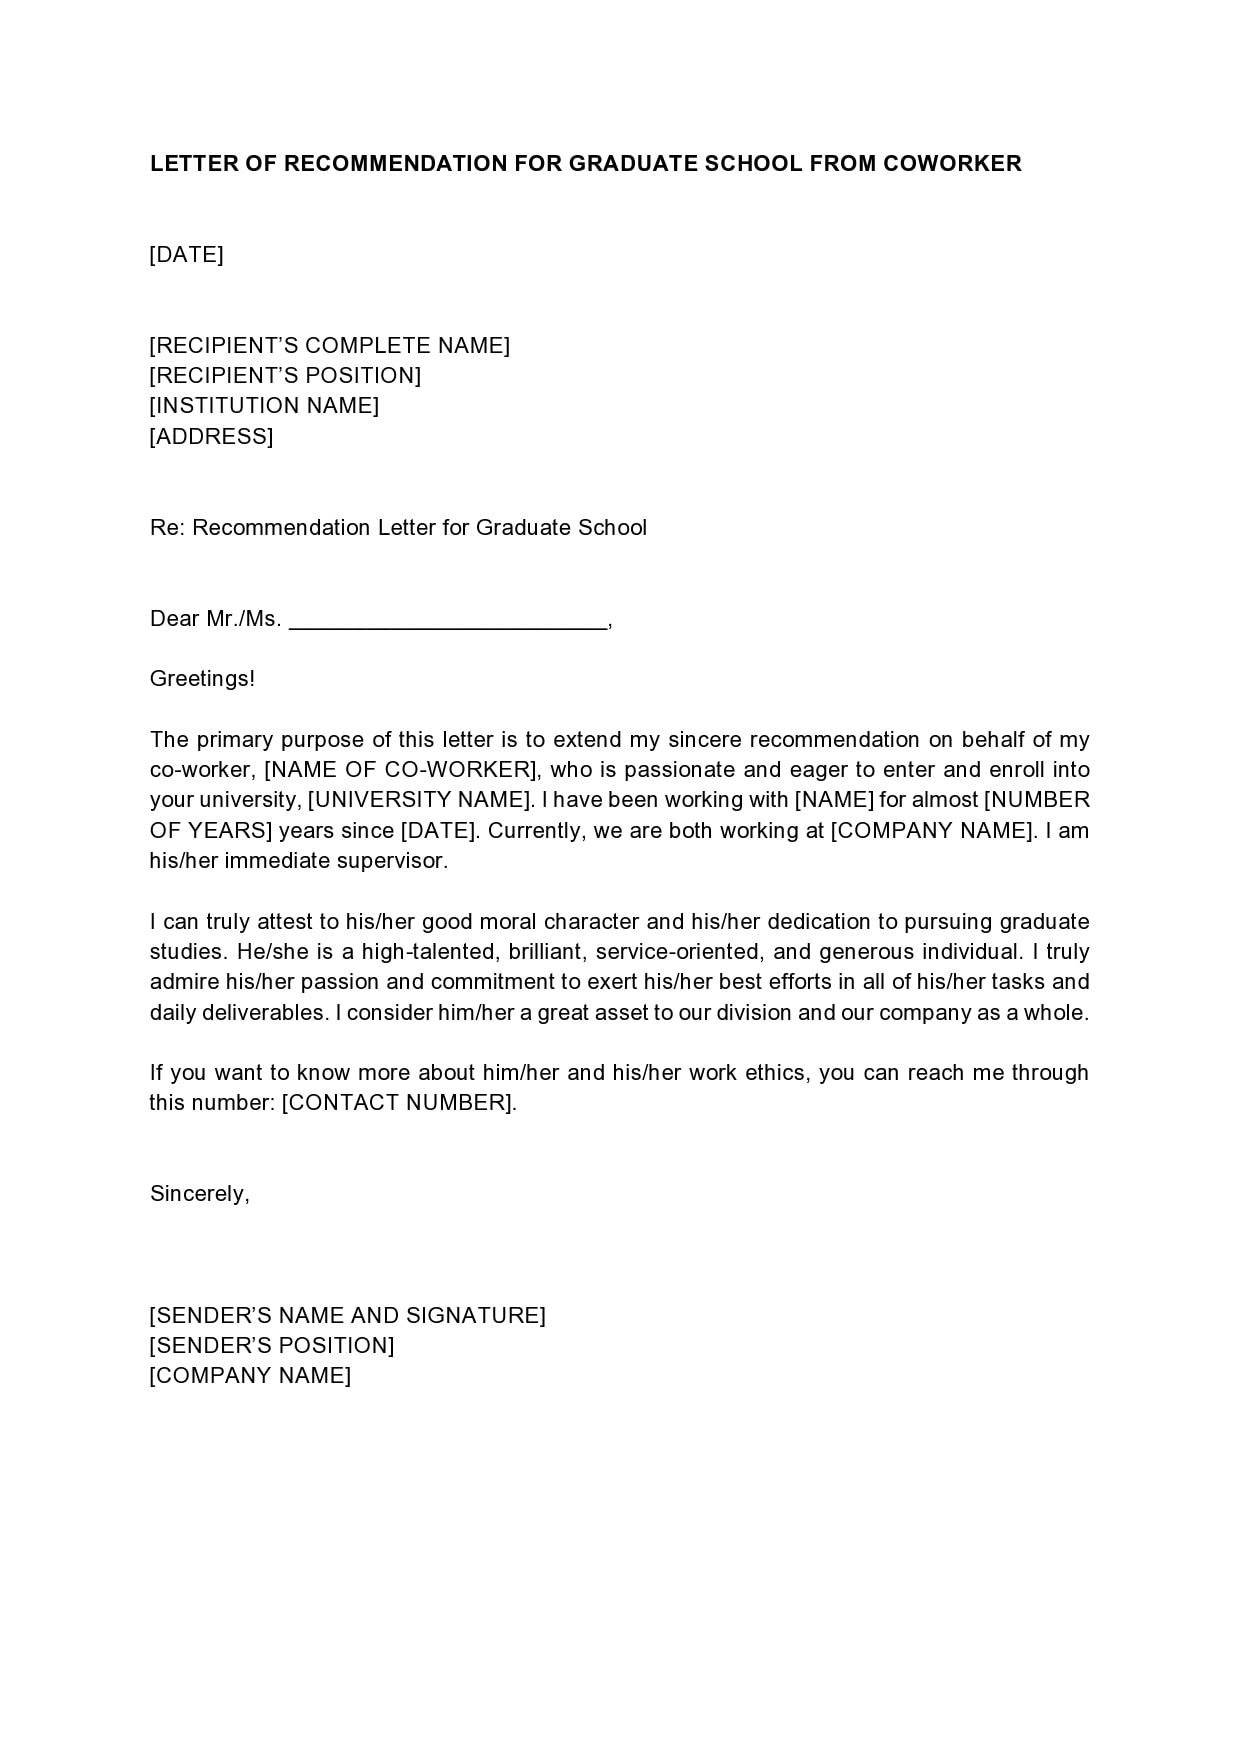 letter of recommendation for graduate school 08